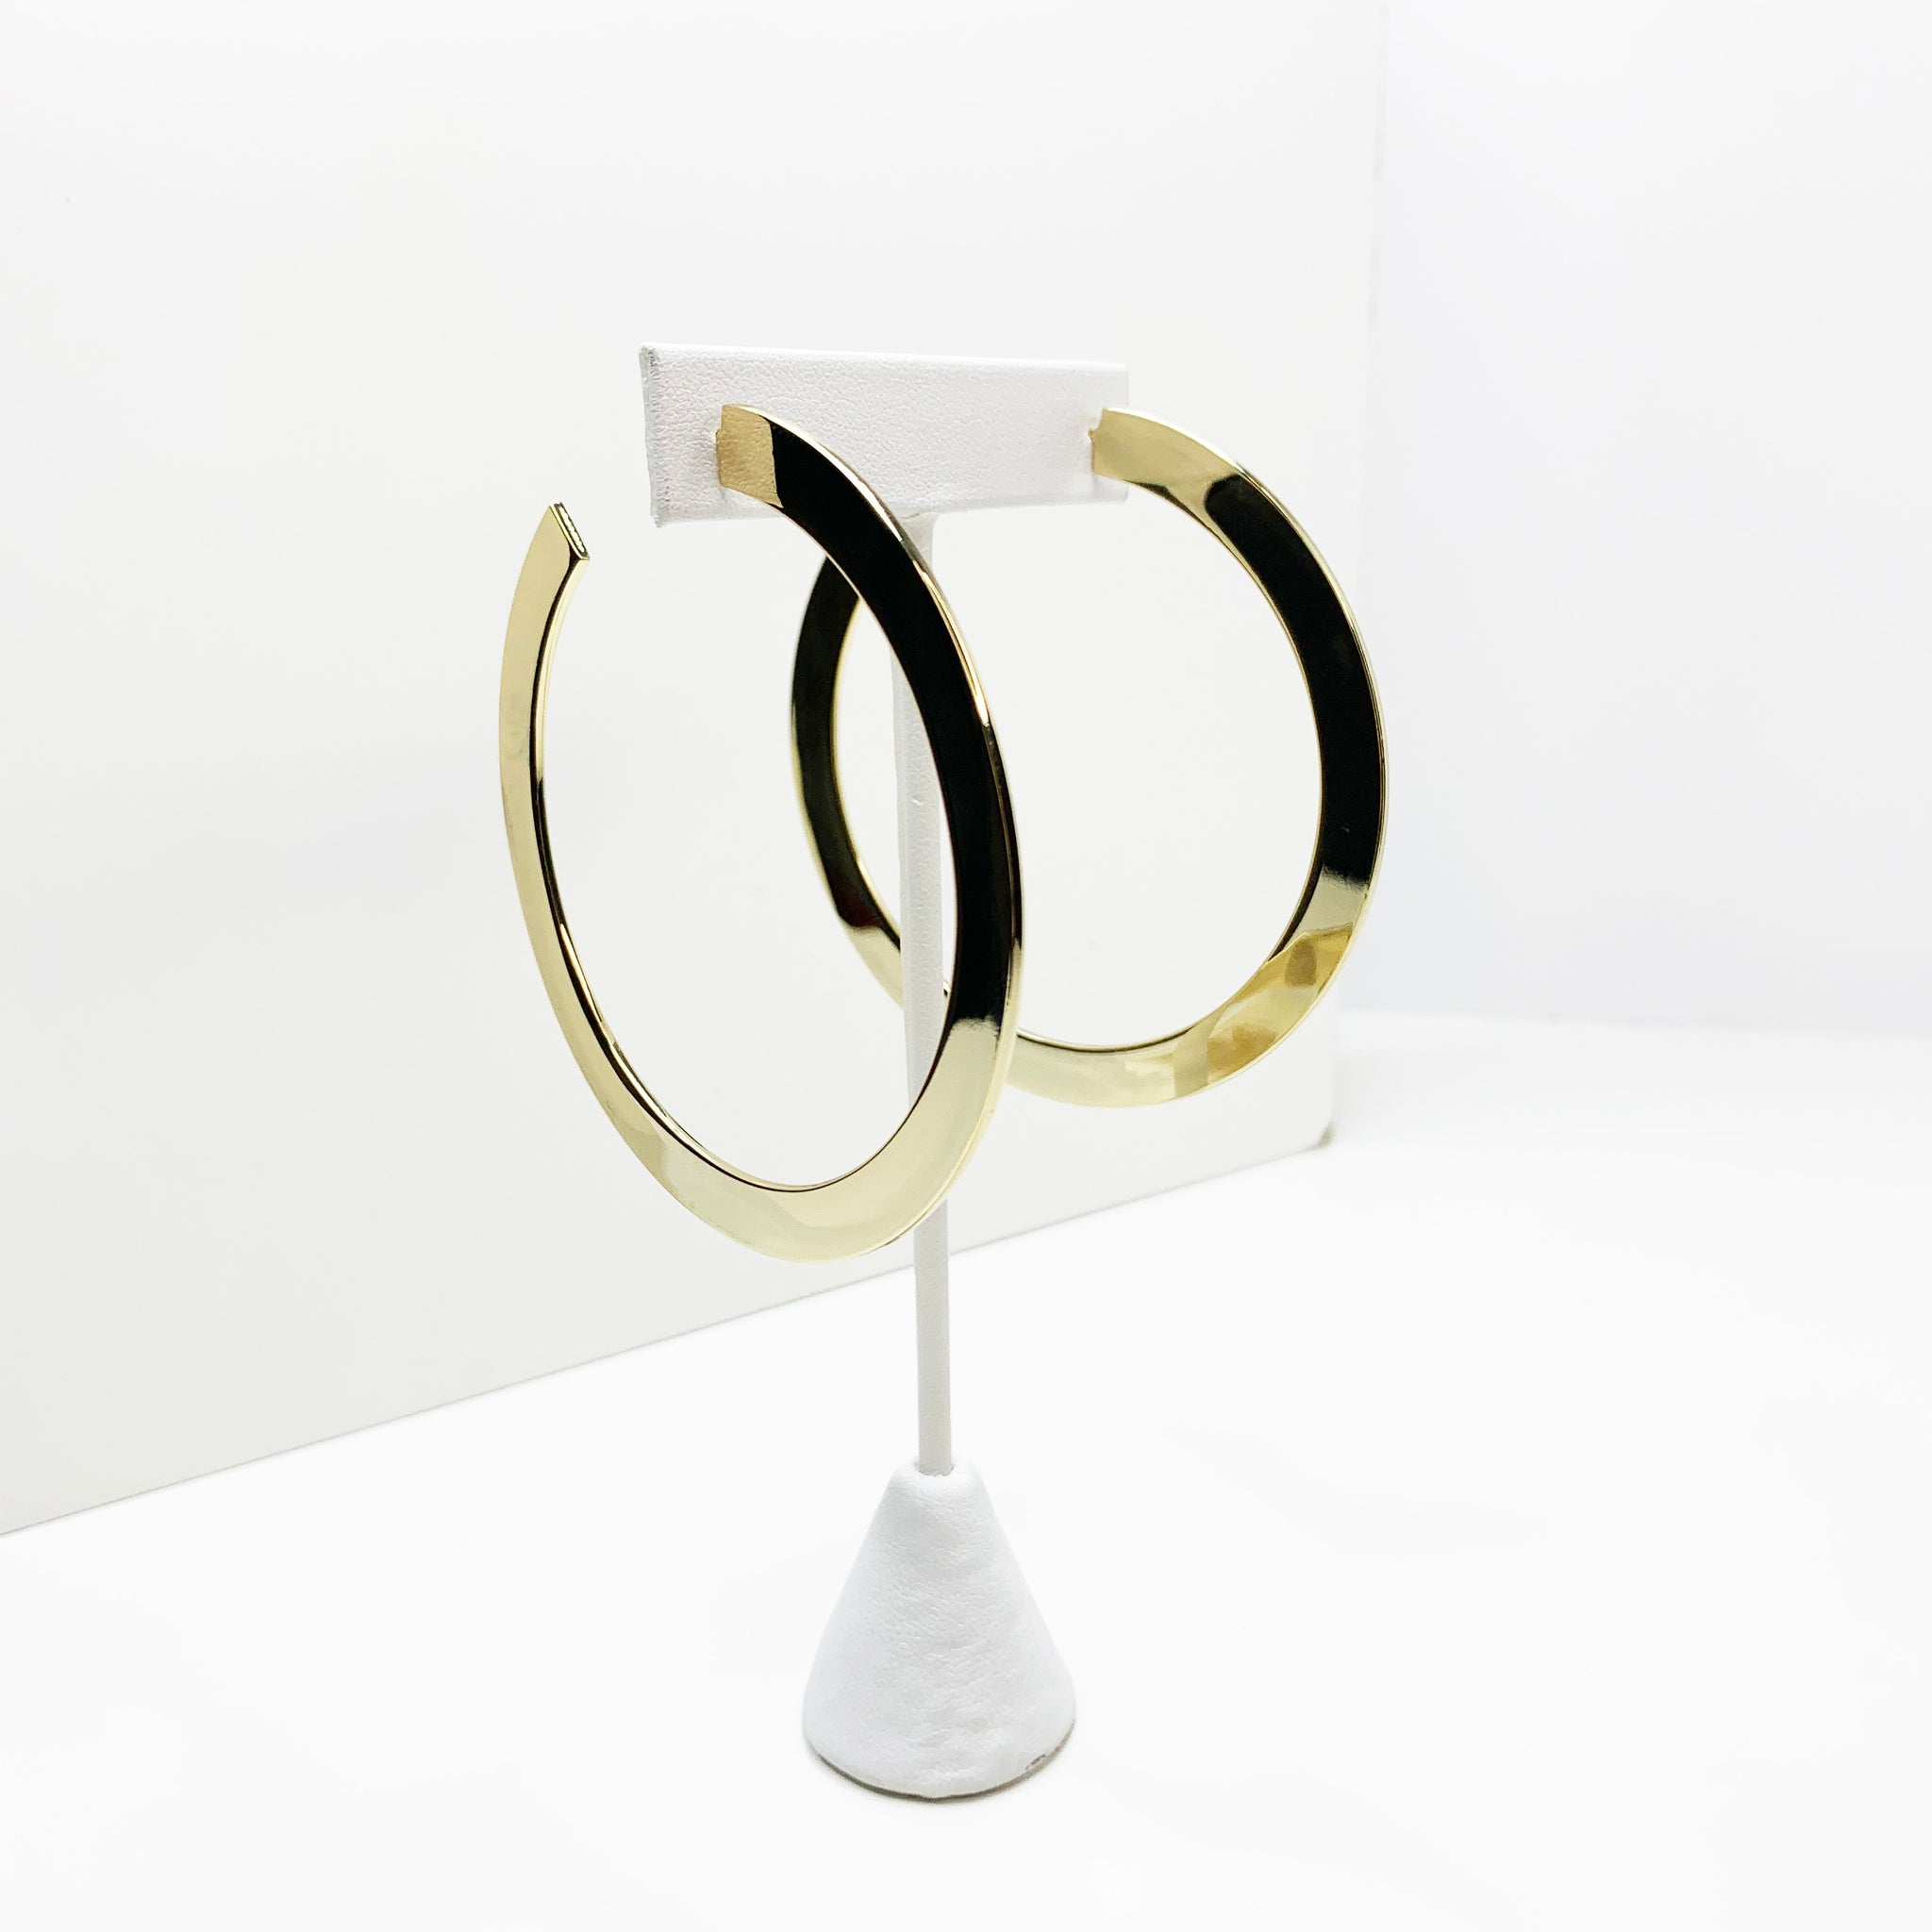 Flat gold hoop earrings